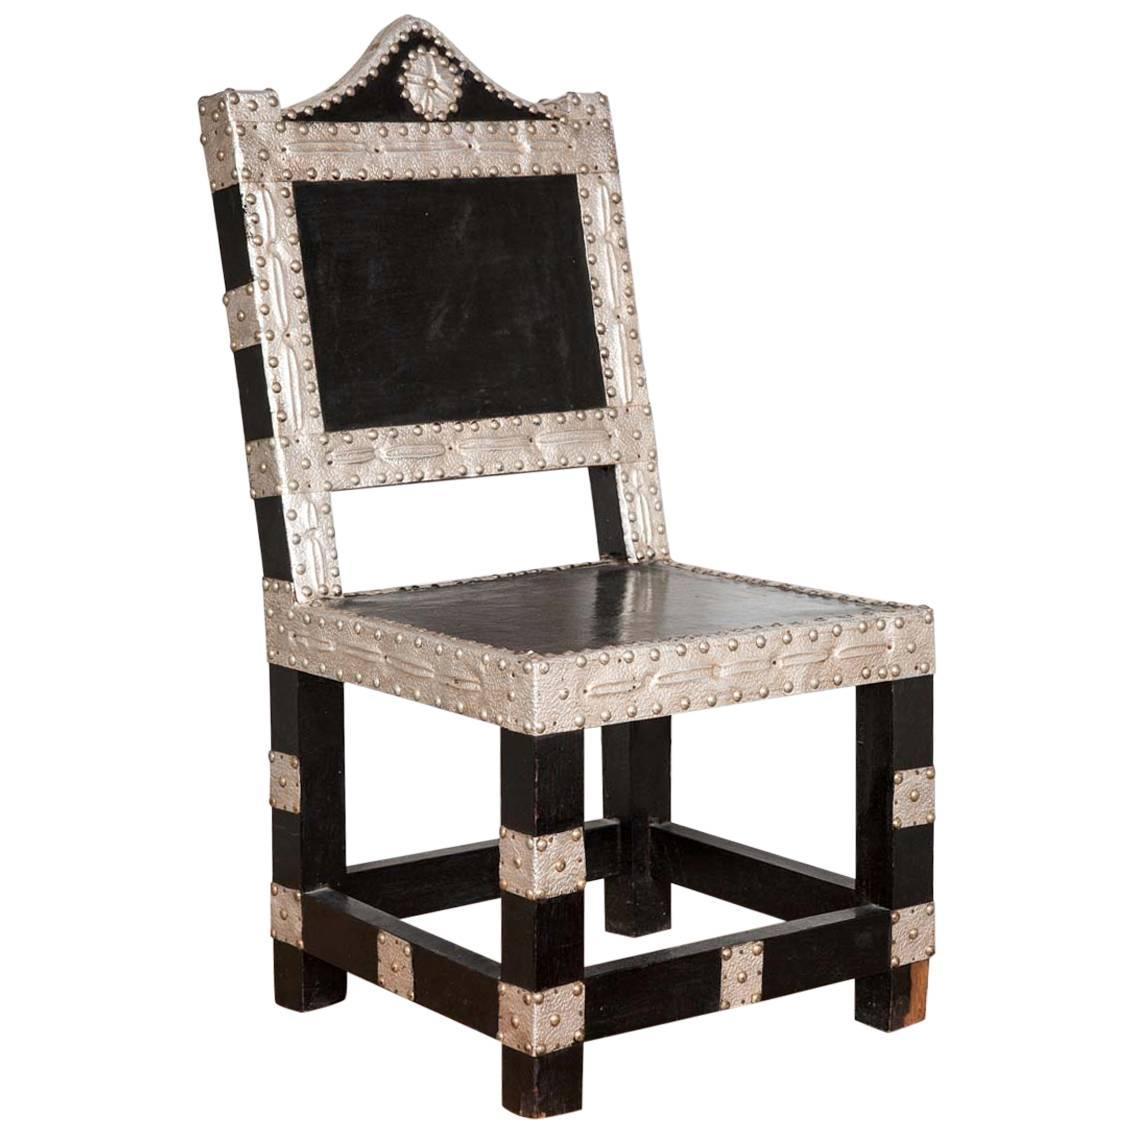 Early 20th Century Ebonized And Silvered Hall Chair At 1stdibs